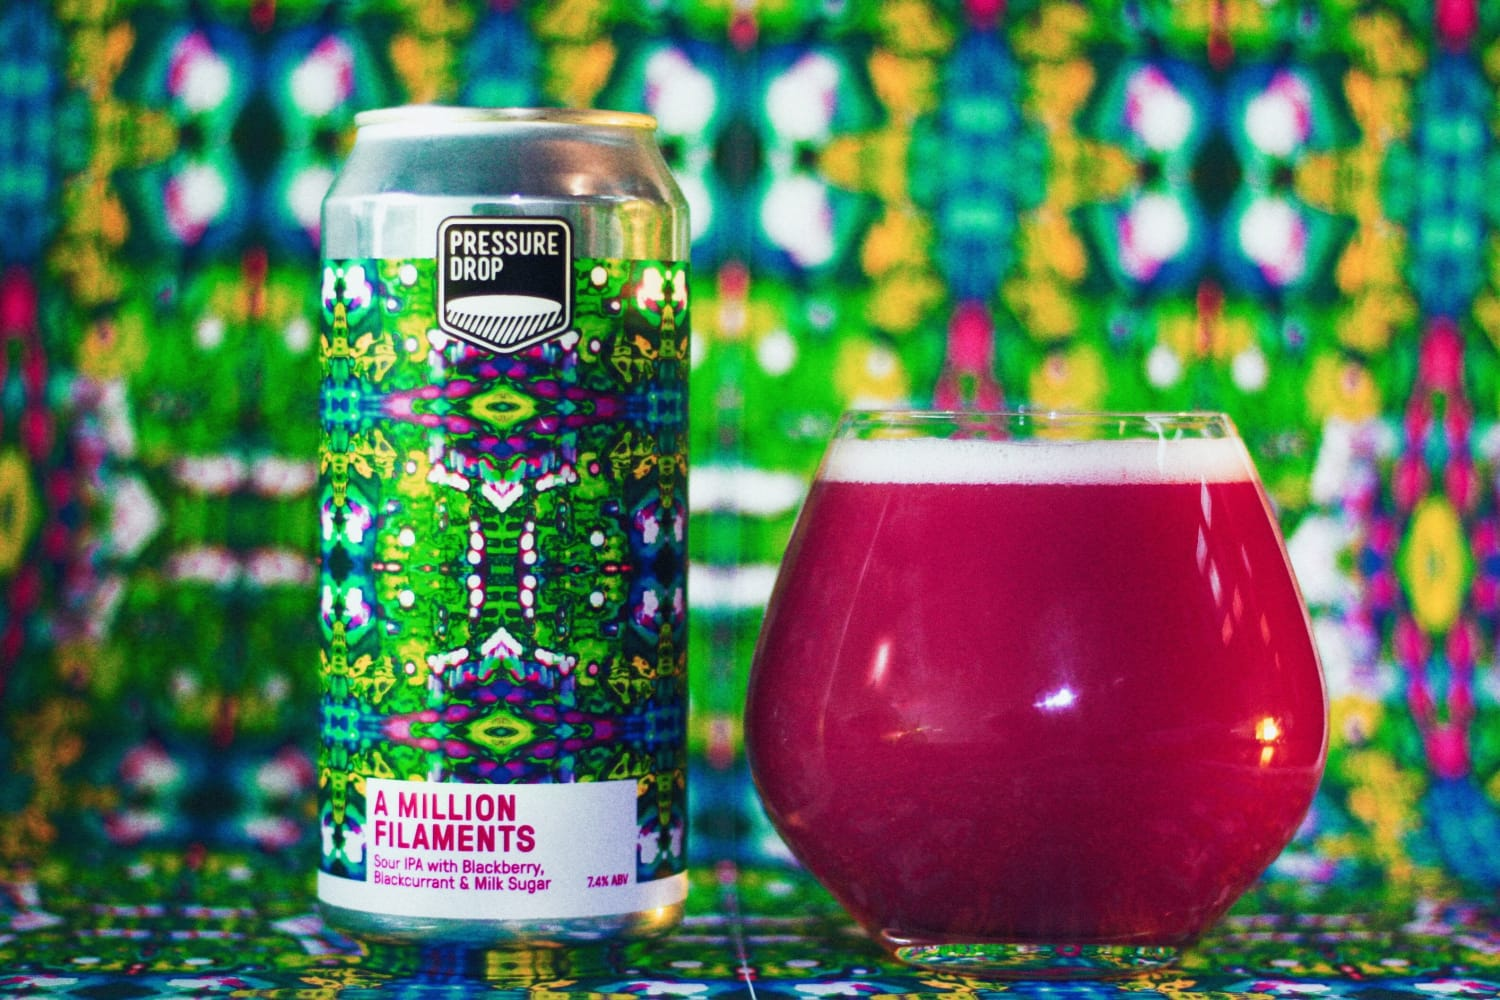 A Million Filaments 7.2% Sour IPA with Blackberry,